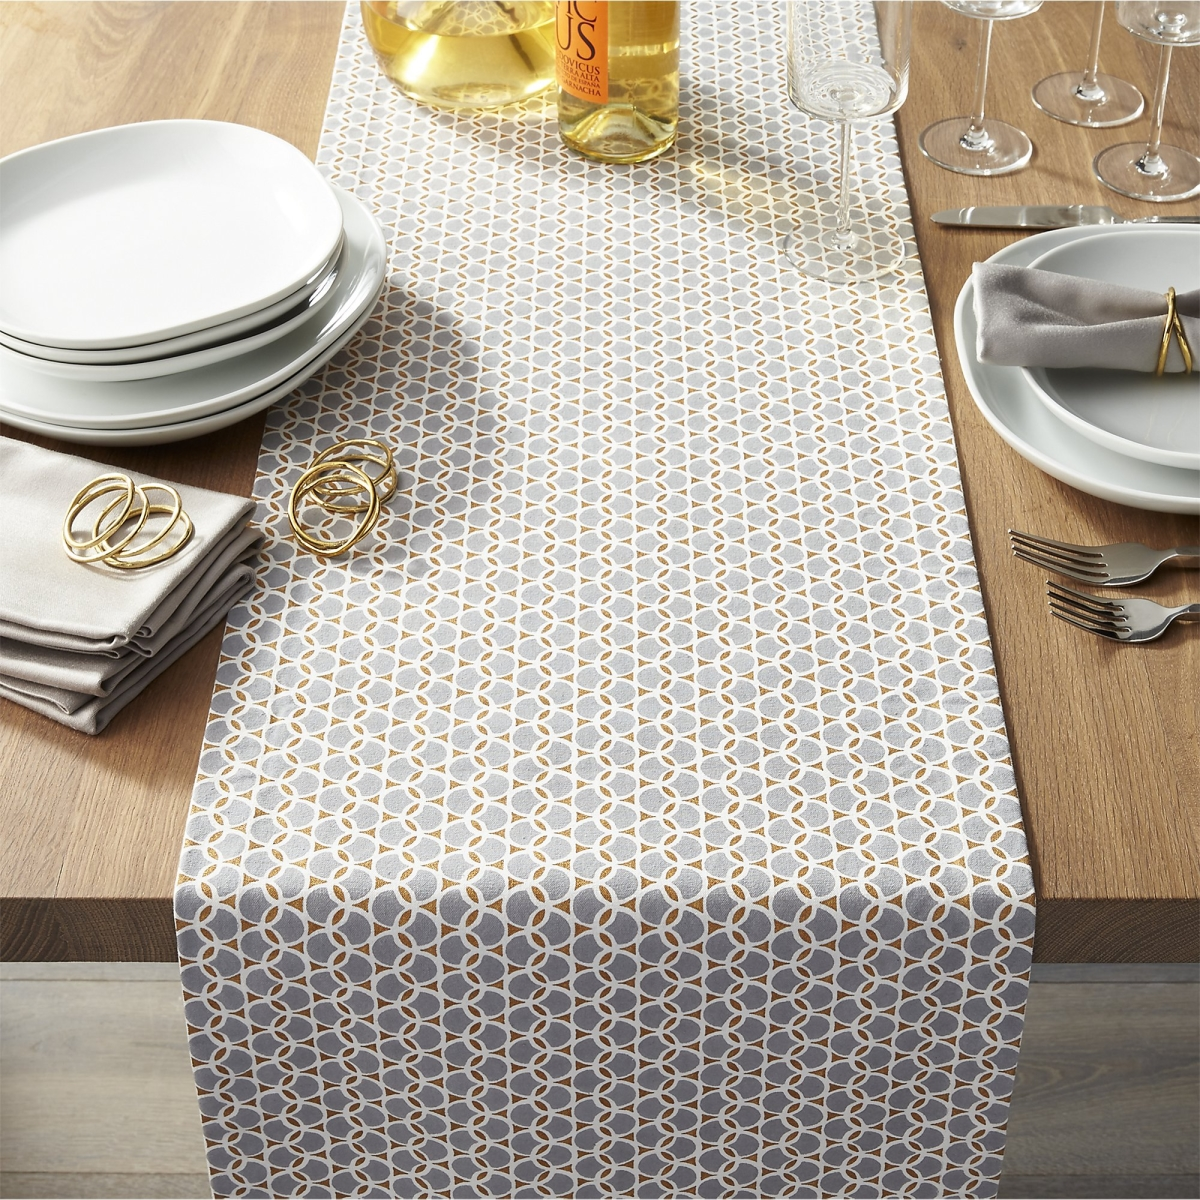 The Finest Table Runners For Your Dining Table